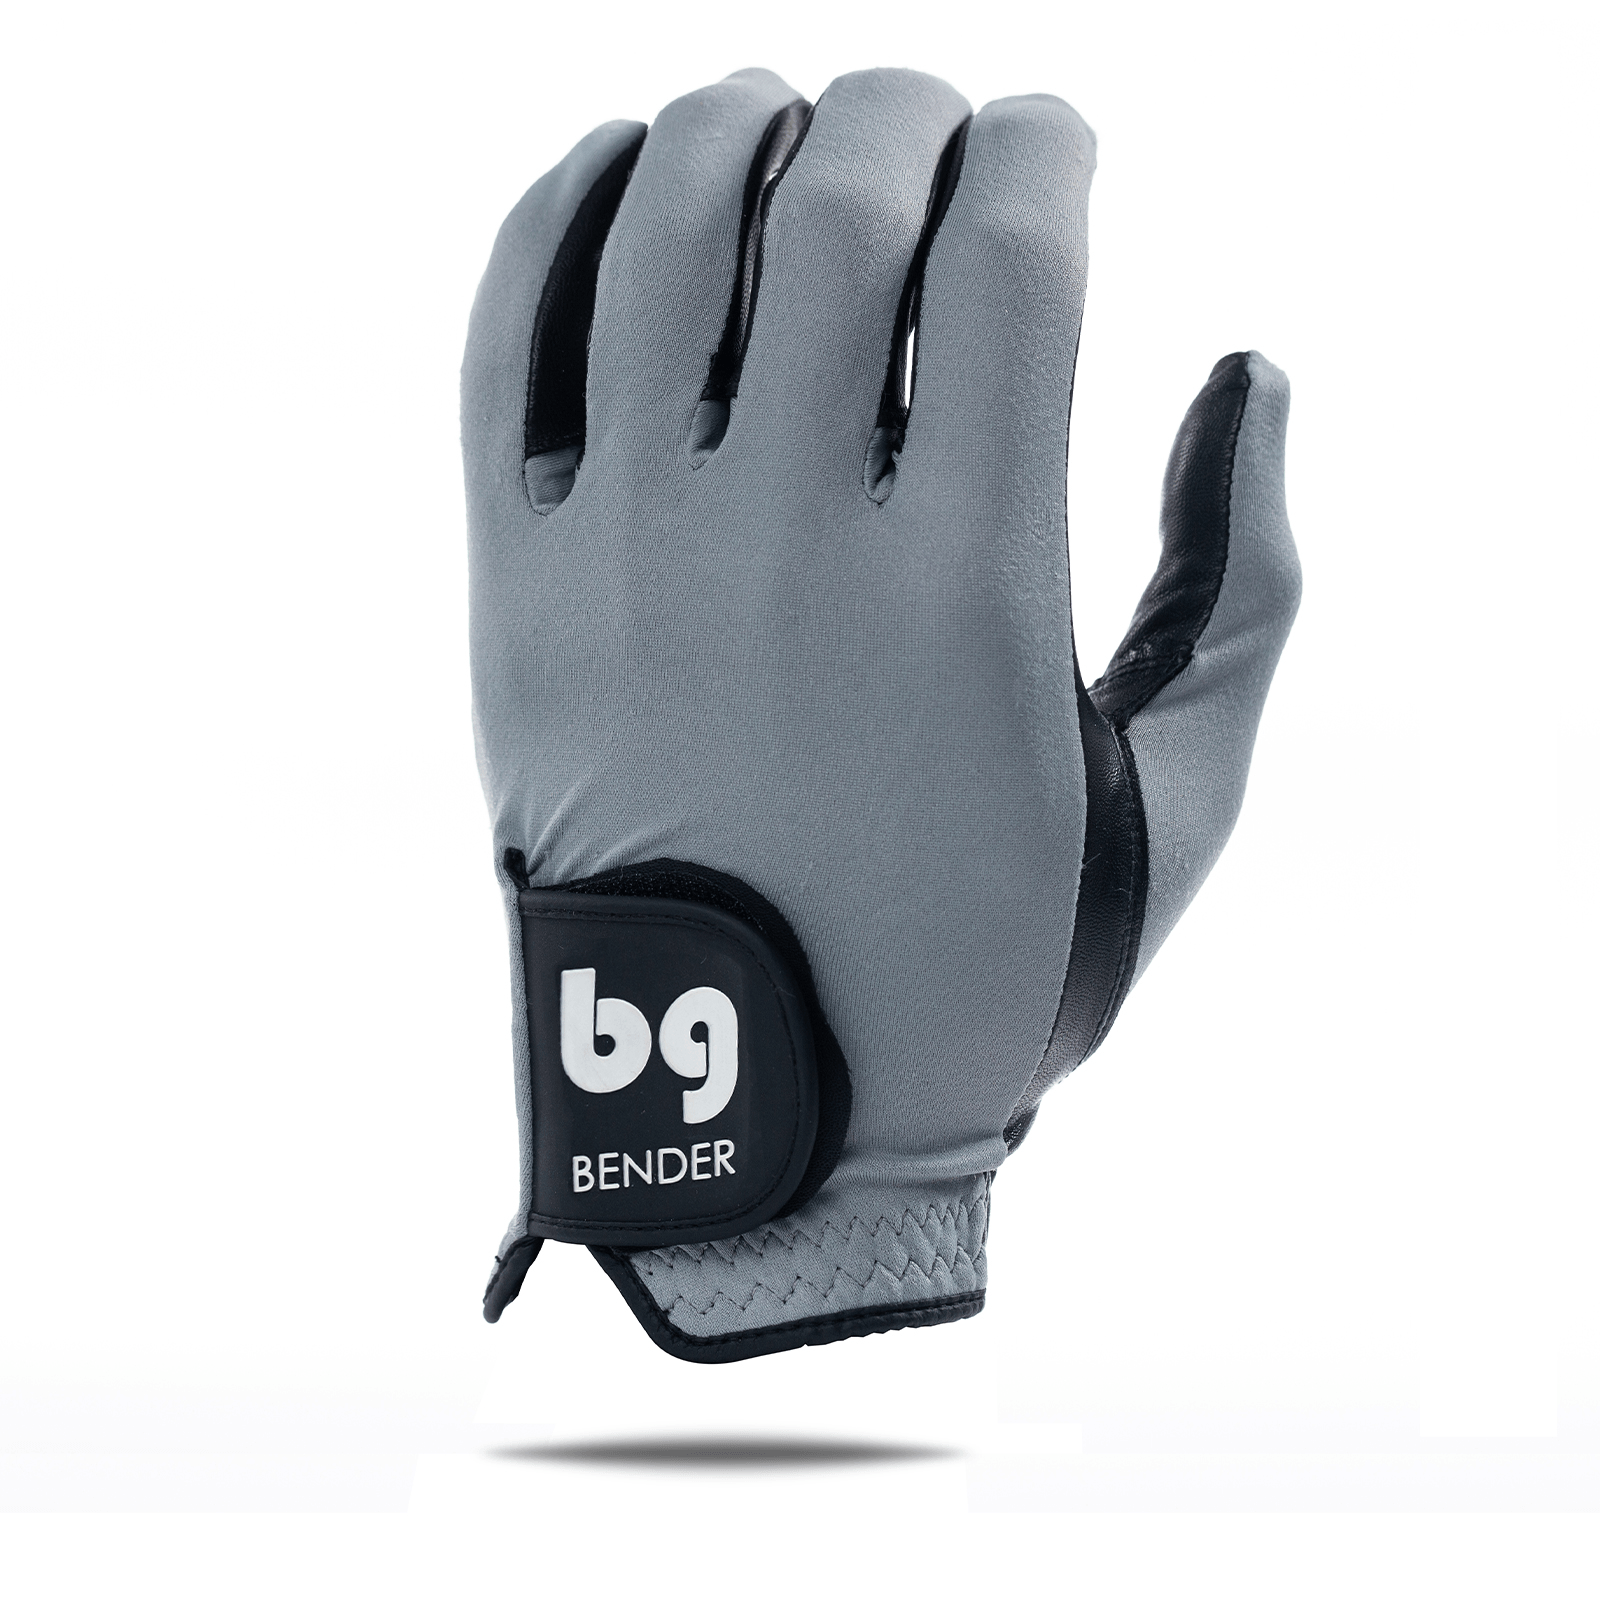 Gray Spandex Golf Glove